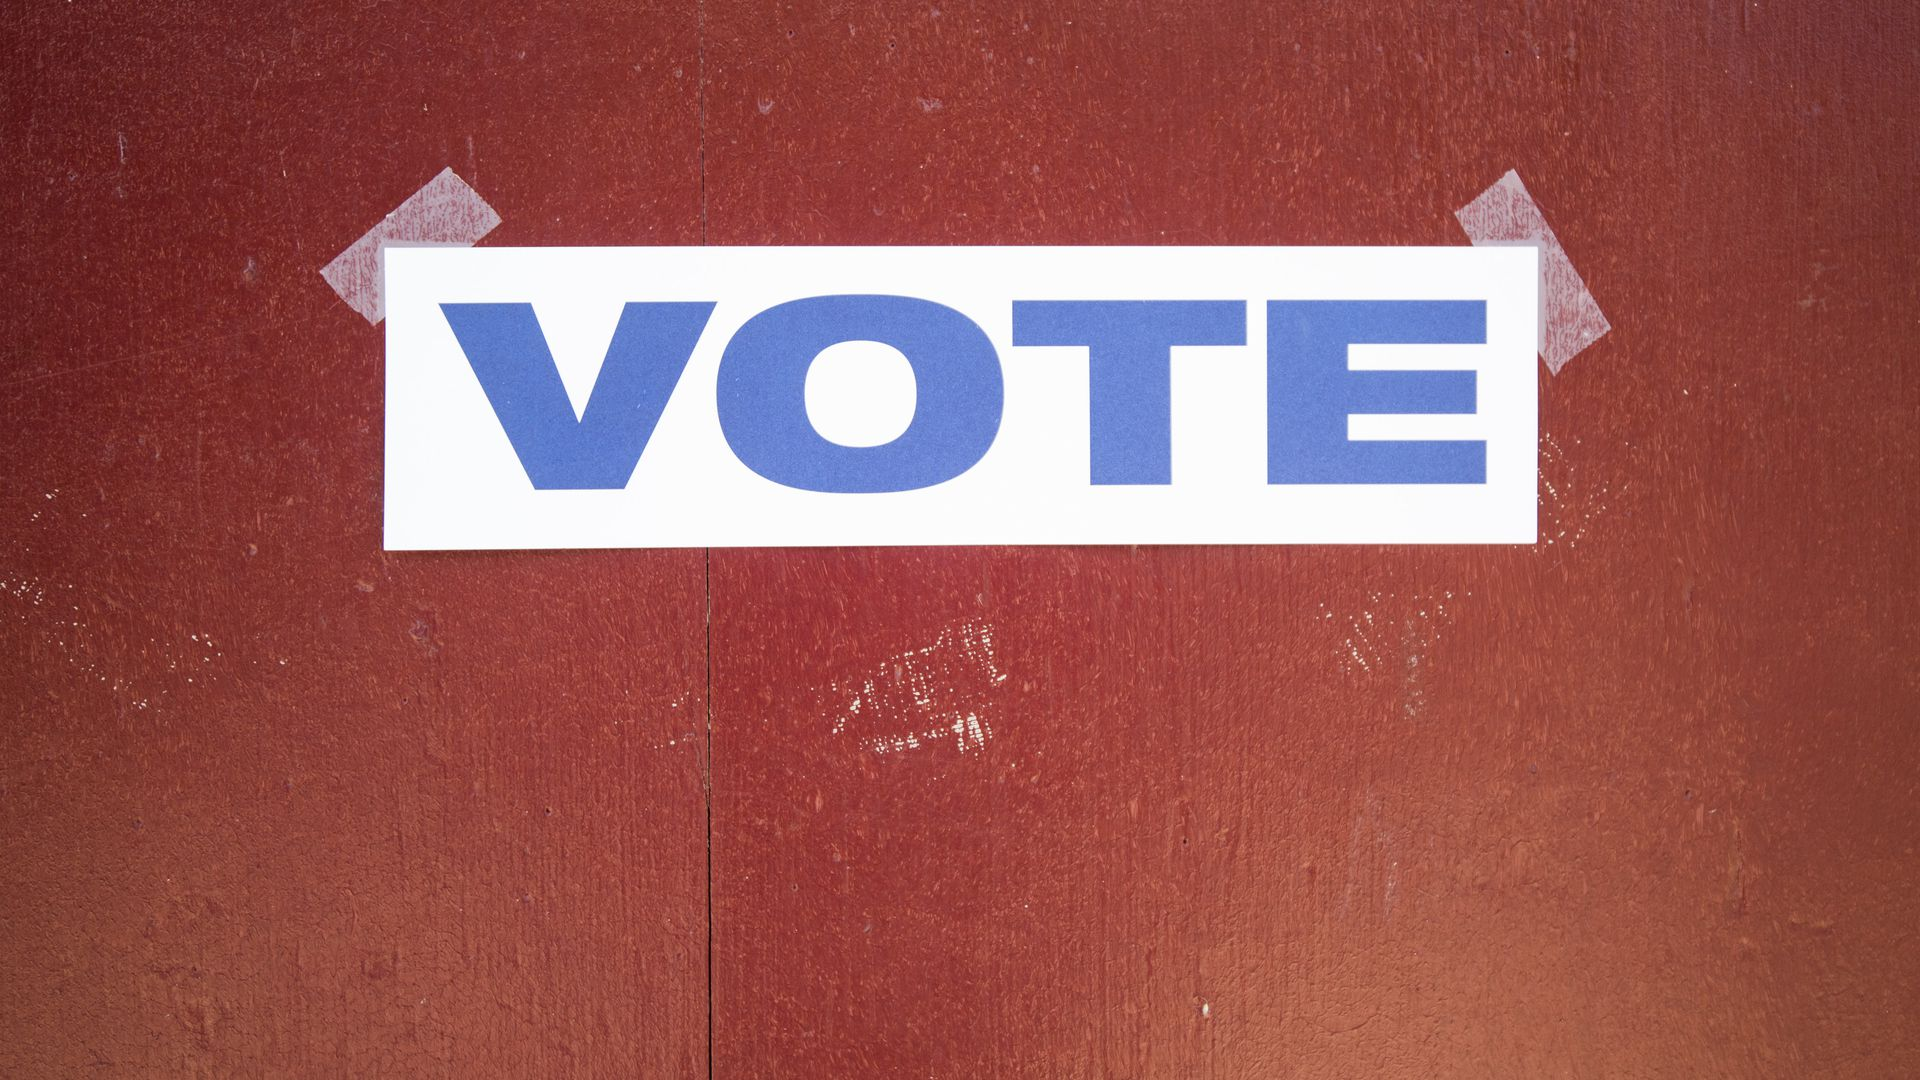 VOTE sign taped to a red wall